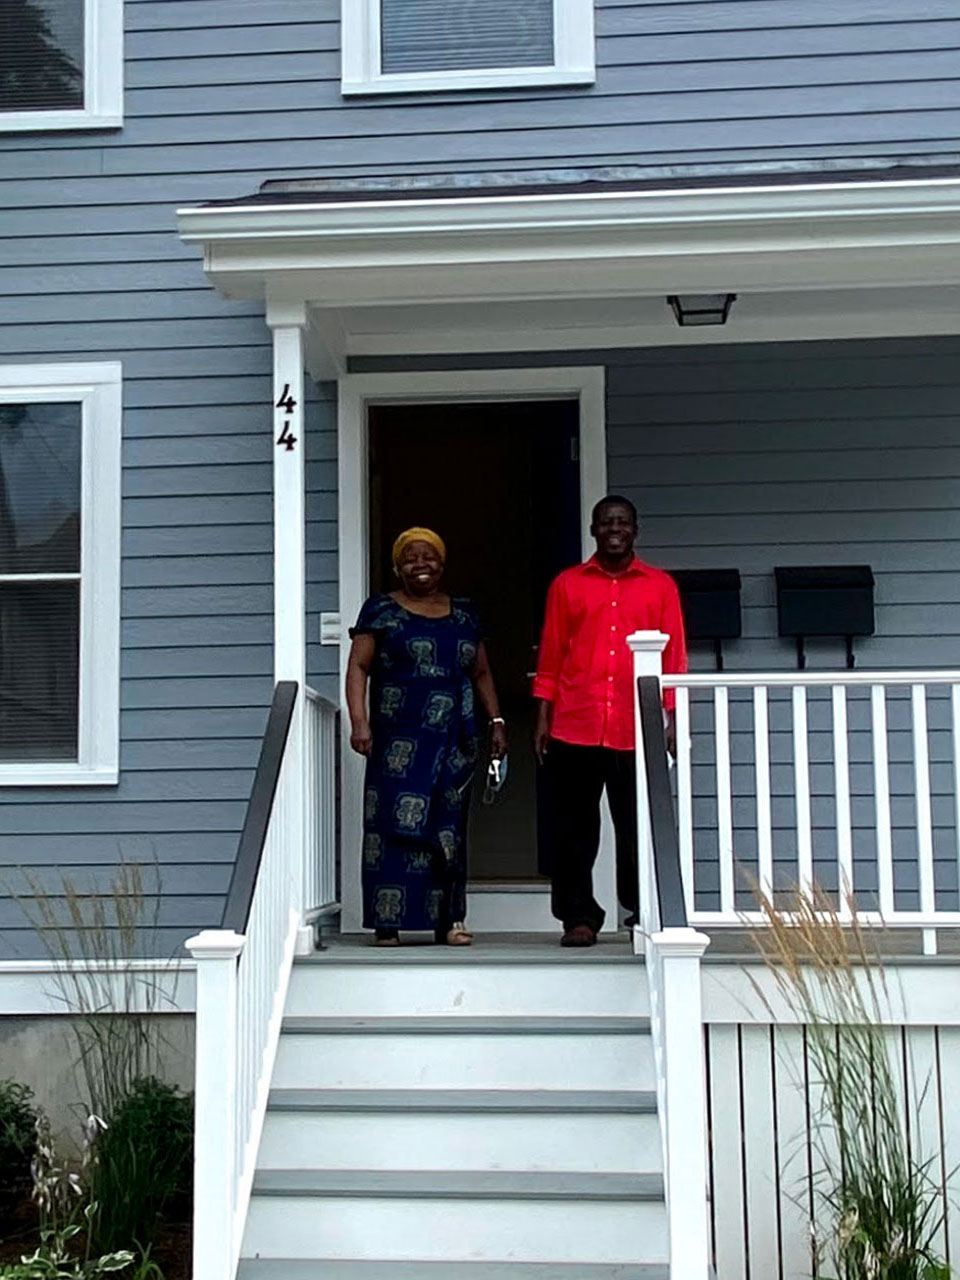 Happy new home owners stading on the front porch.